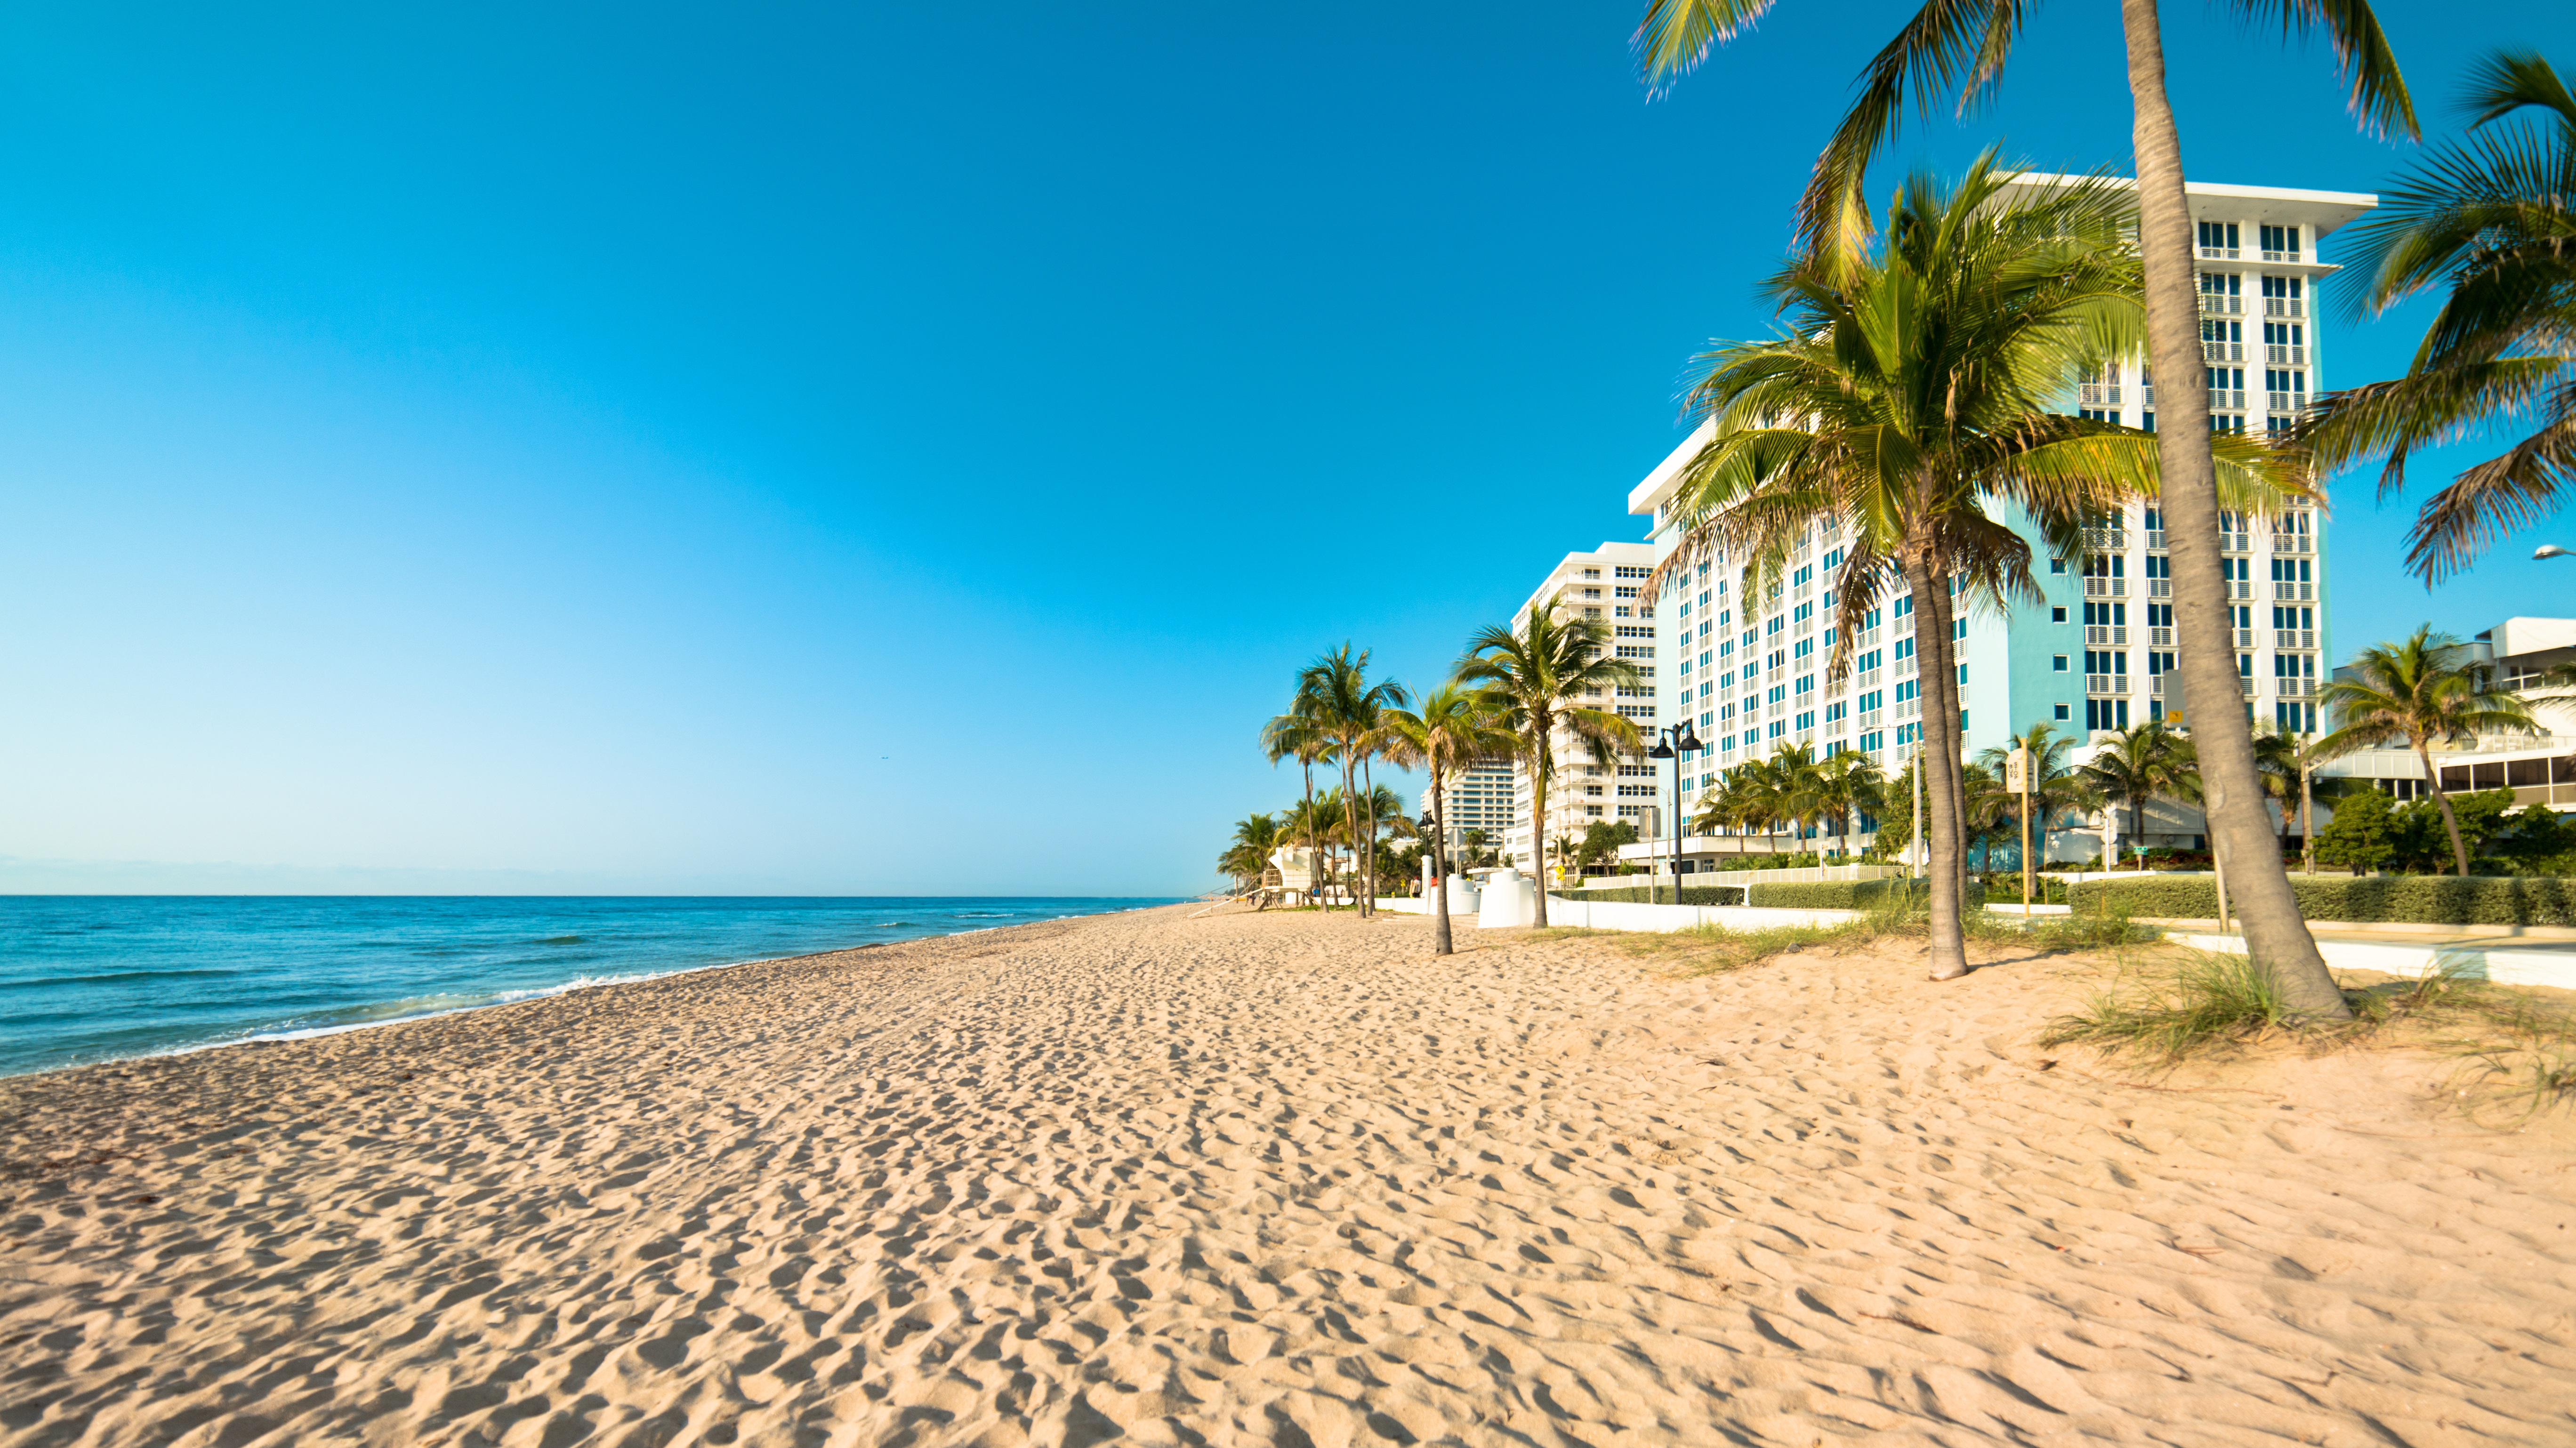 Fort Lauderdale Strand in Florida